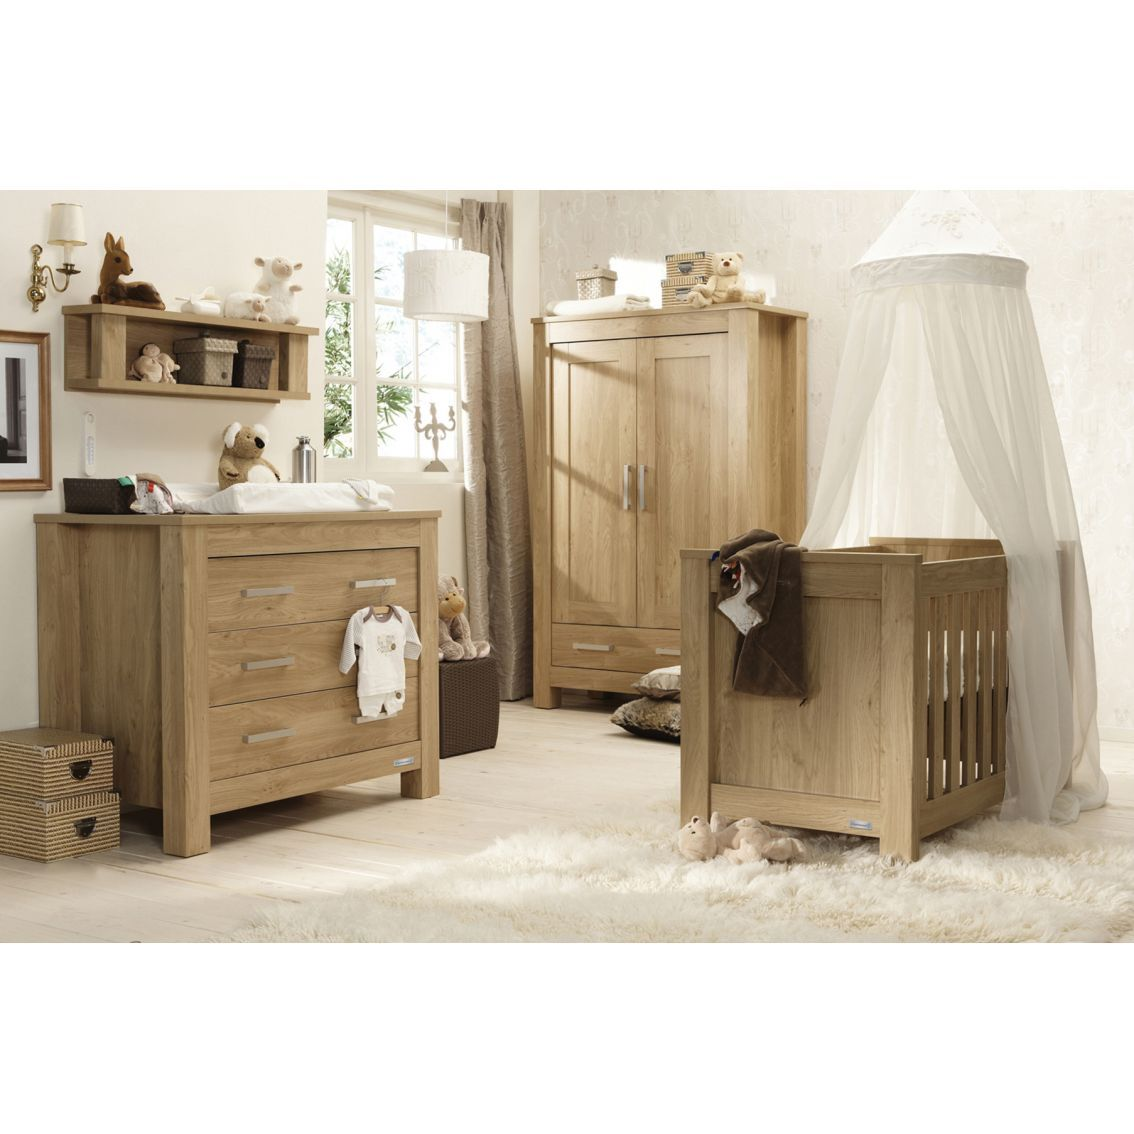 Babystyle Bordeaux Nursery Furniture Set Is A New Set From Babystyle With A  Solid, Robust Style And Construction. A Solid And Modern Design.